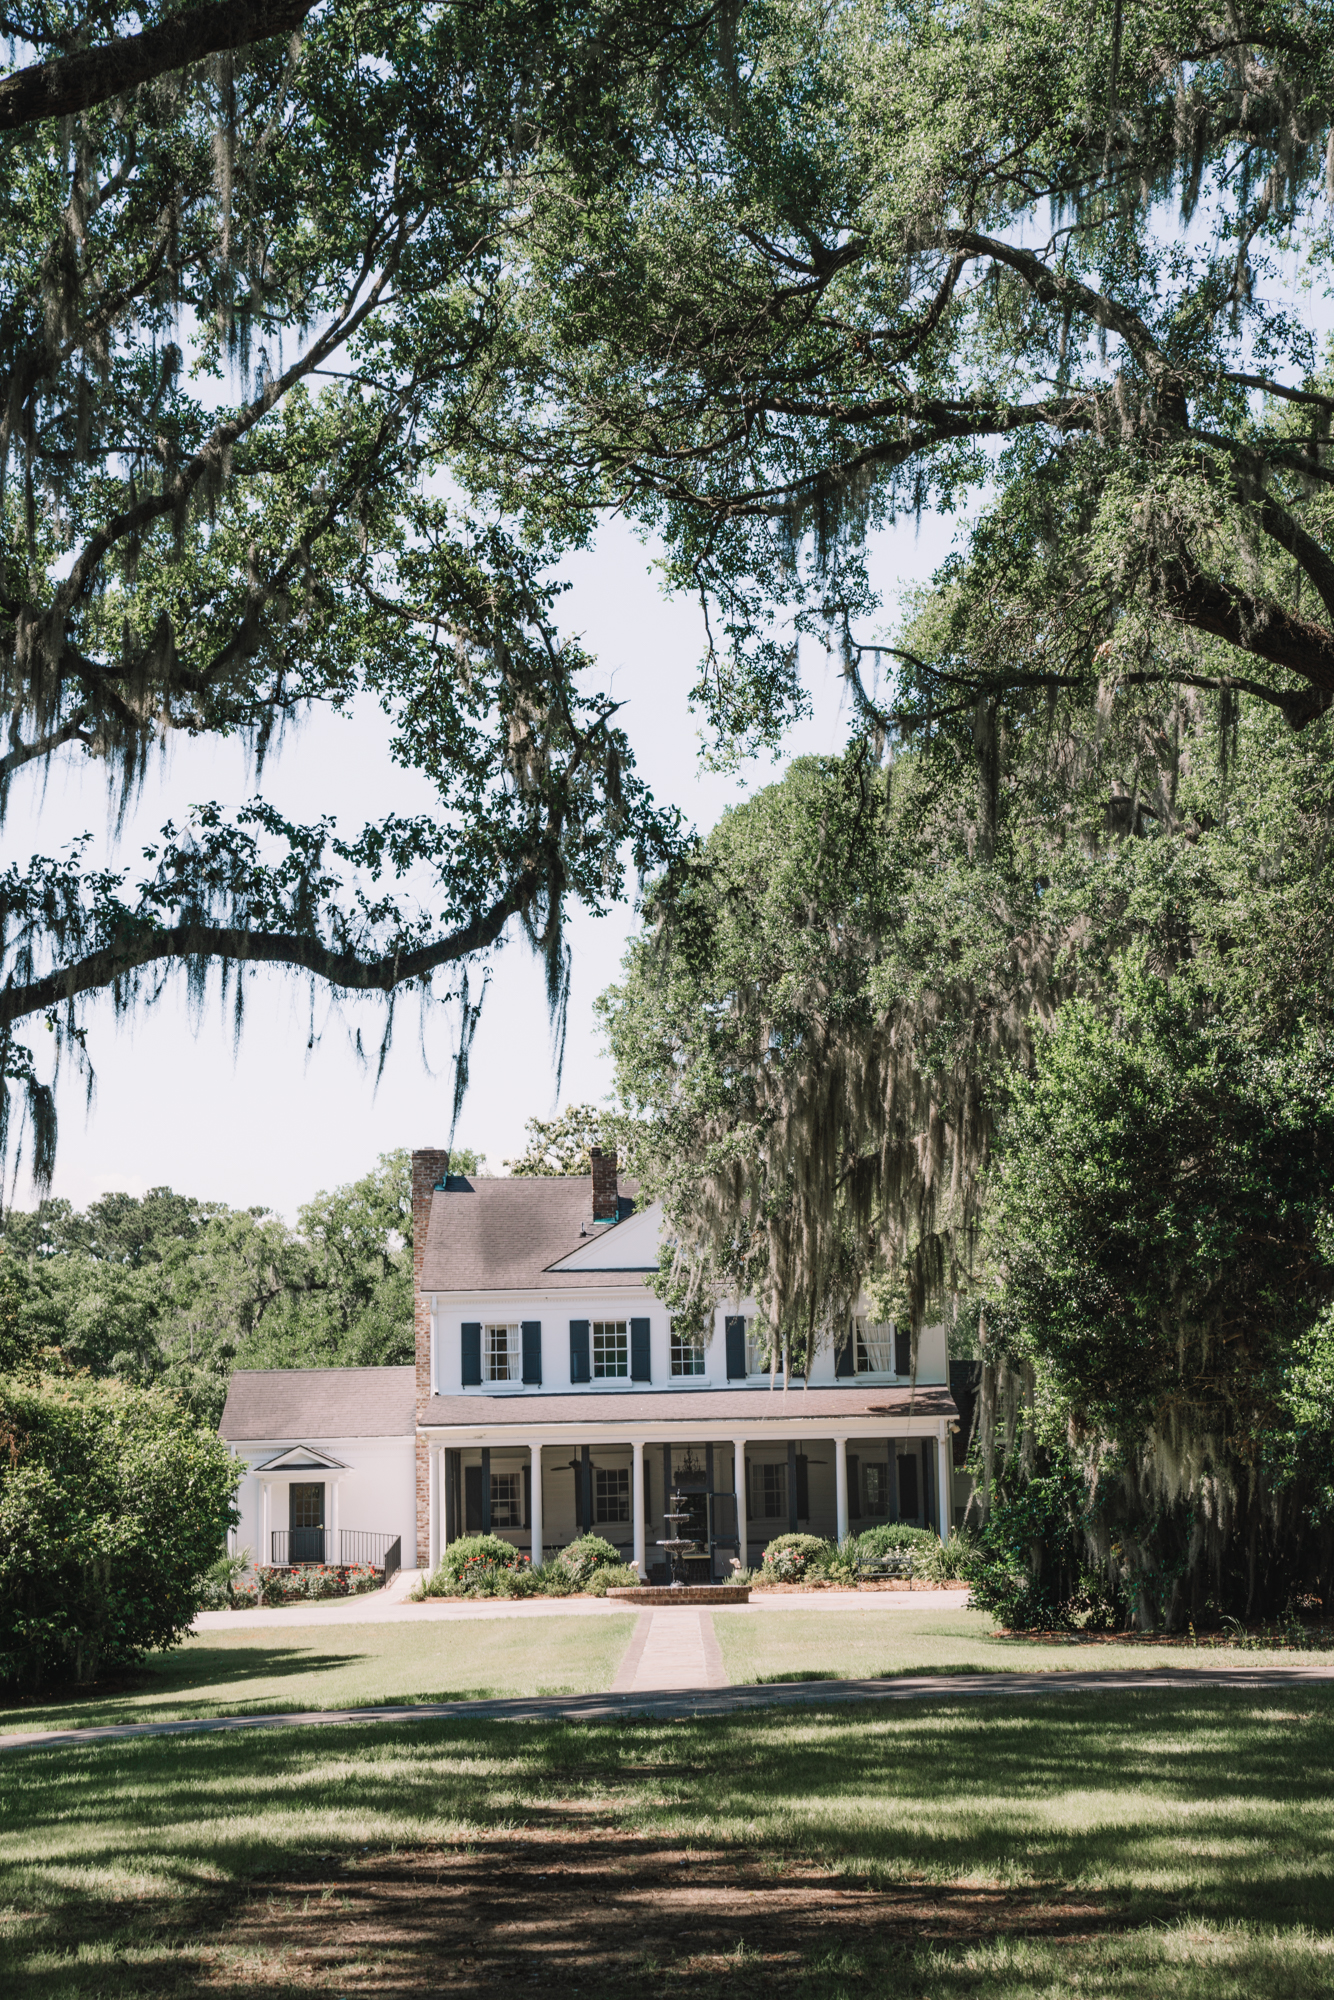 Things to do in Charleston sc with kids - a white plantation house with black shutters stands beneath oak trees hanging Spanish moss.